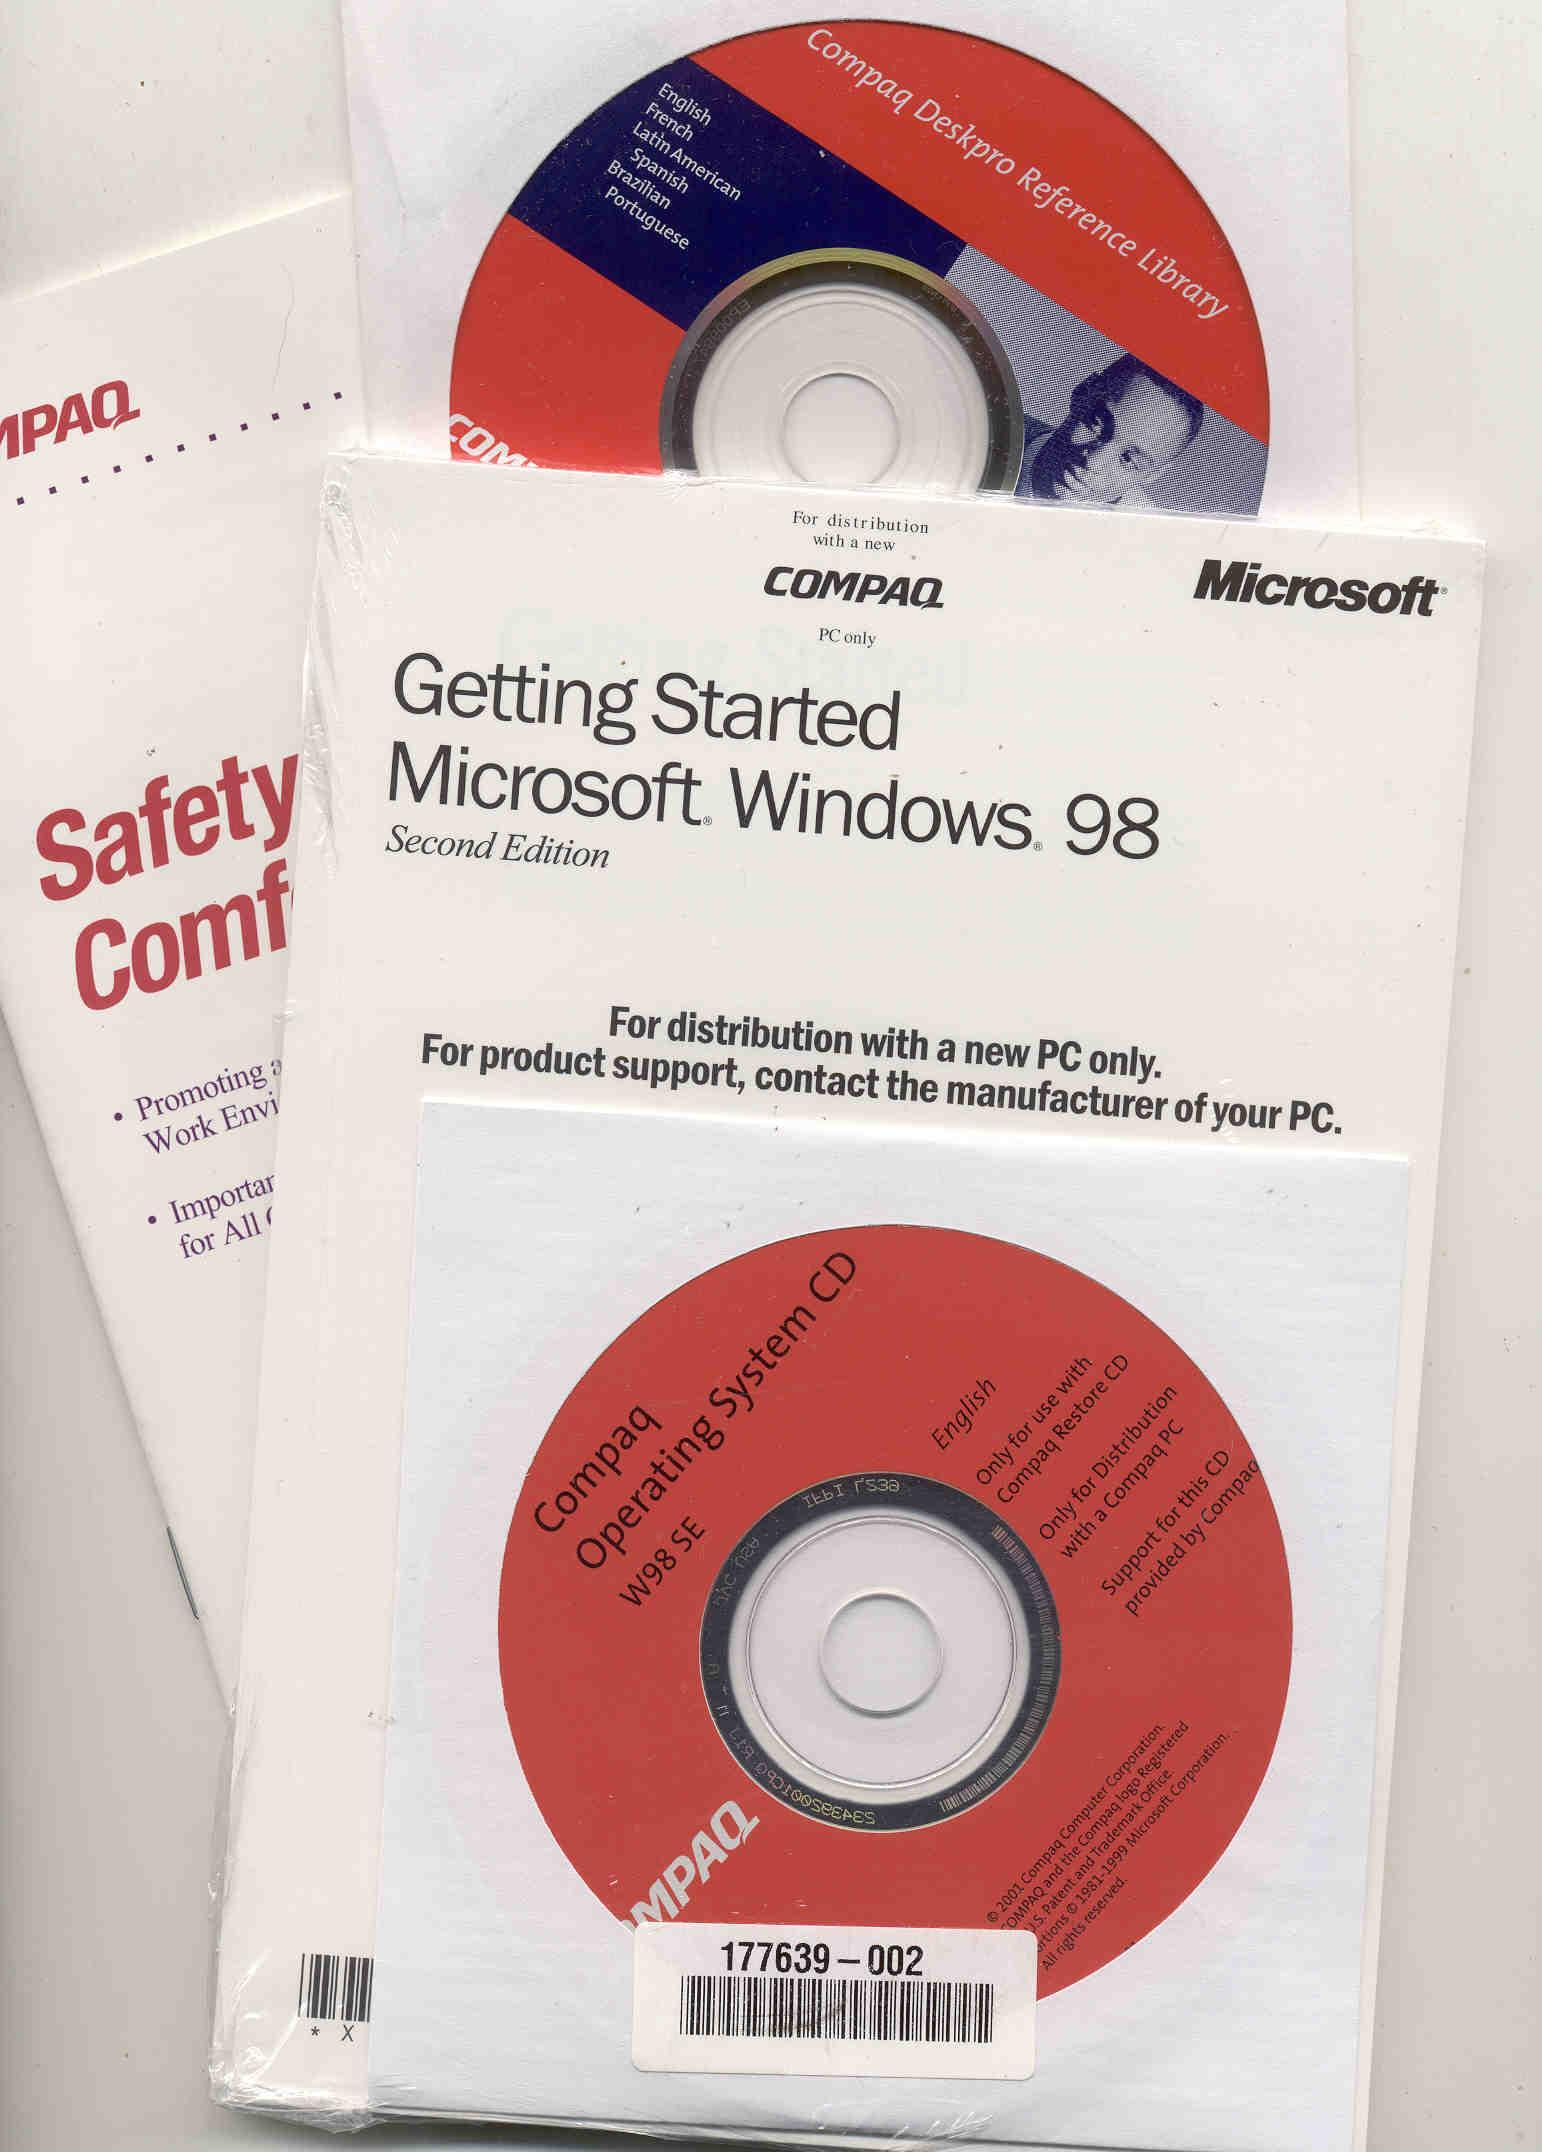 windows 98 second edition cd - photos of an ear